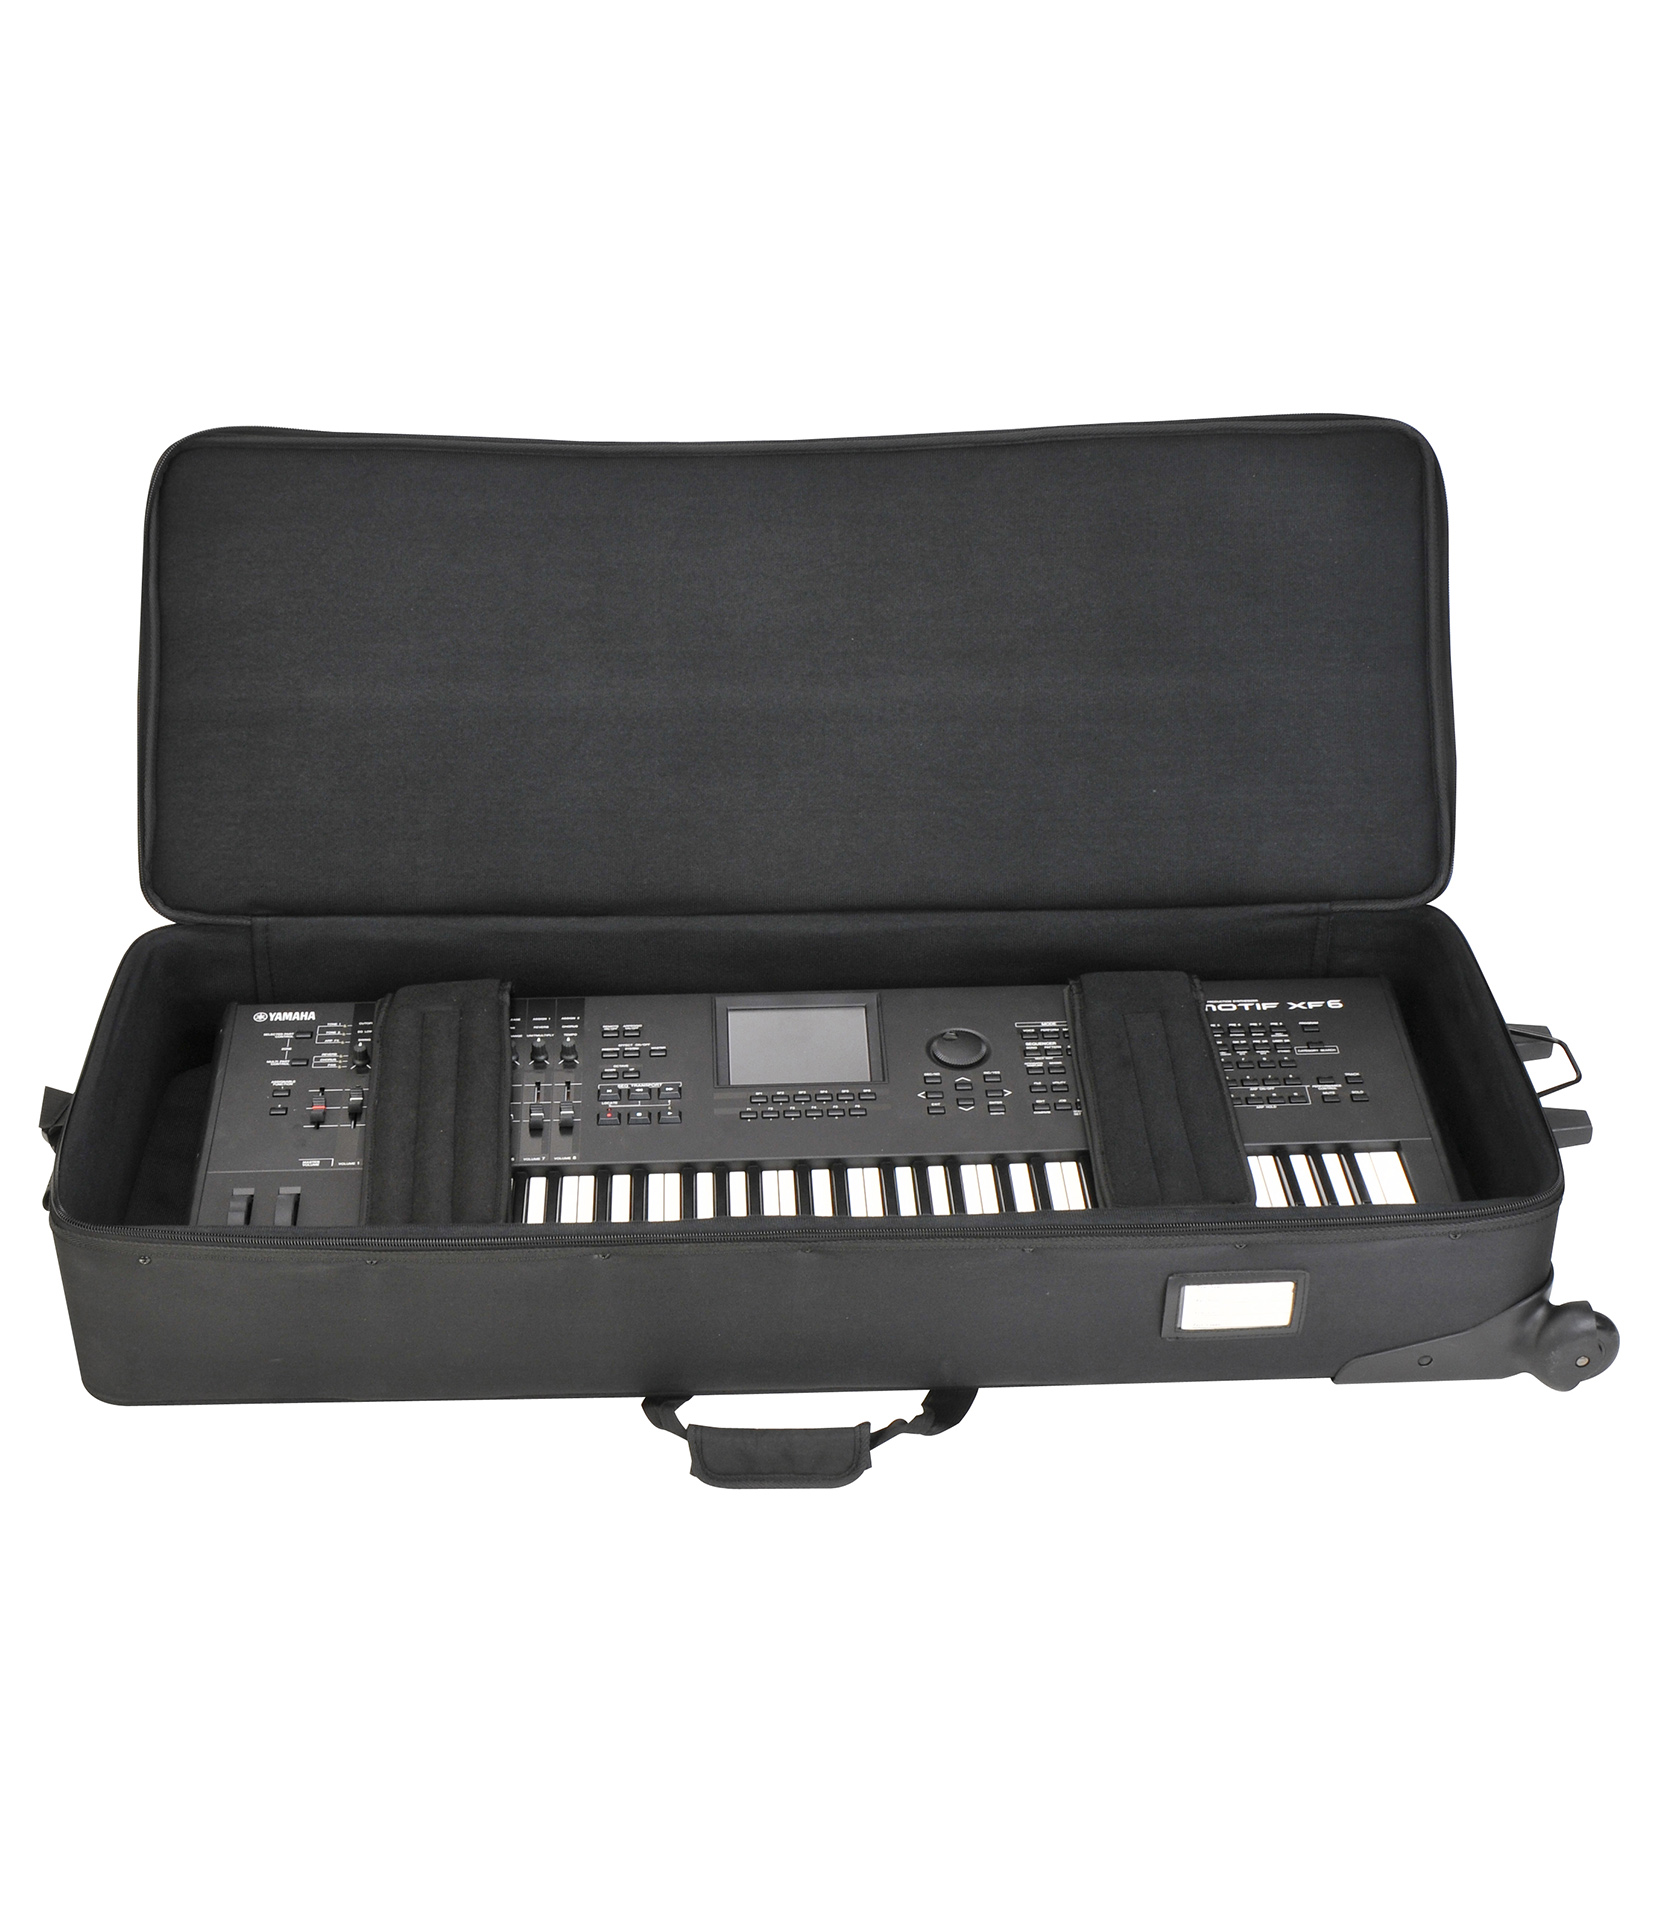 skb - 1SKB SC61KWSoft Case for 61 Note Keyboard - info@melodyhousemi.com